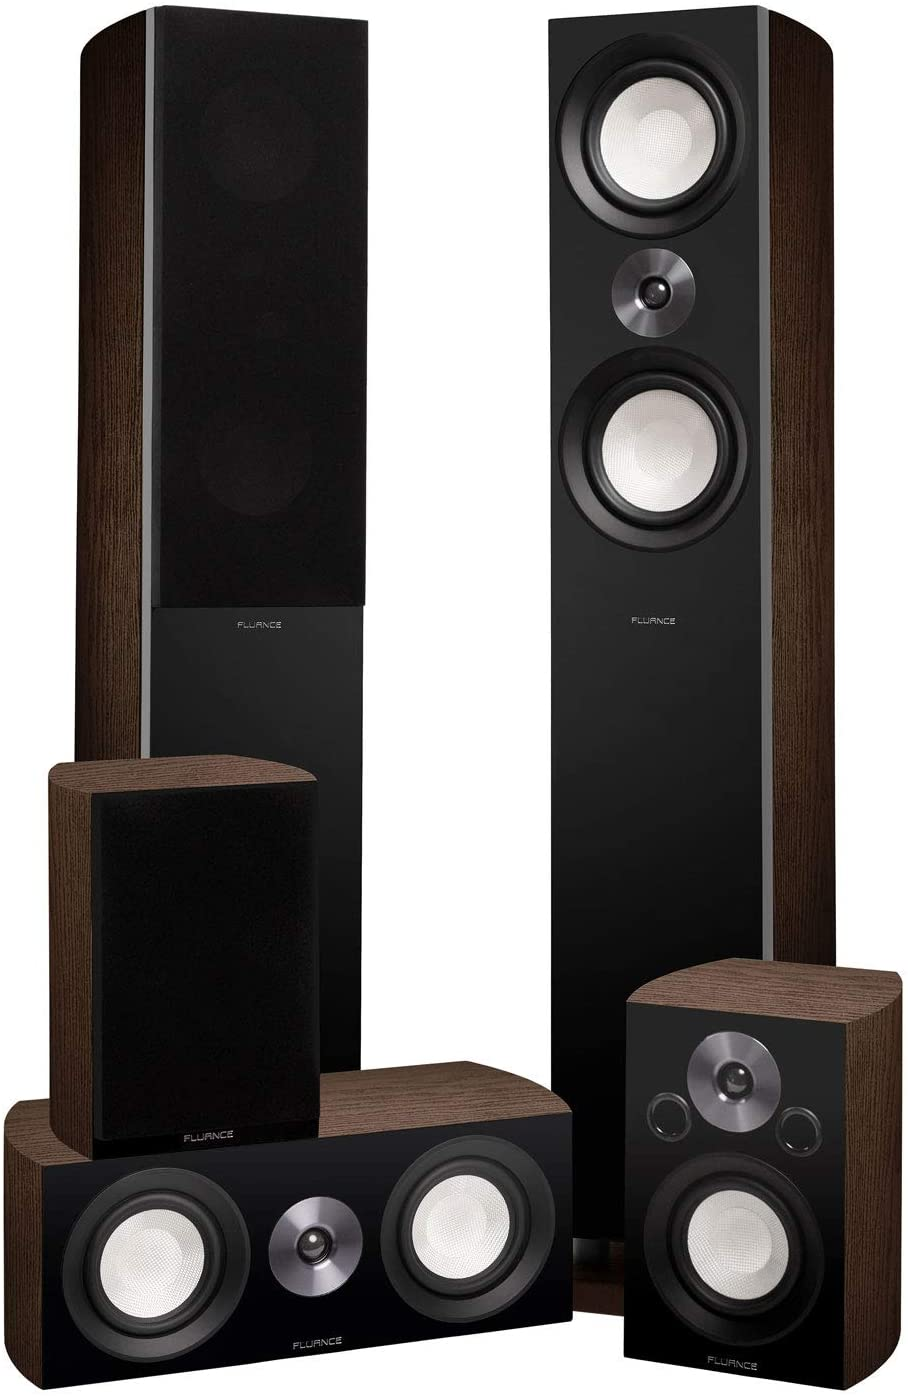 Fluance Reference Surround Sound Home Theater 5.0 Channel Speaker System Including 3-Way Floorstanding Floorstanding Towers, Center Channel, and Rear Surround Speakers - Walnut (XL8HTBW)